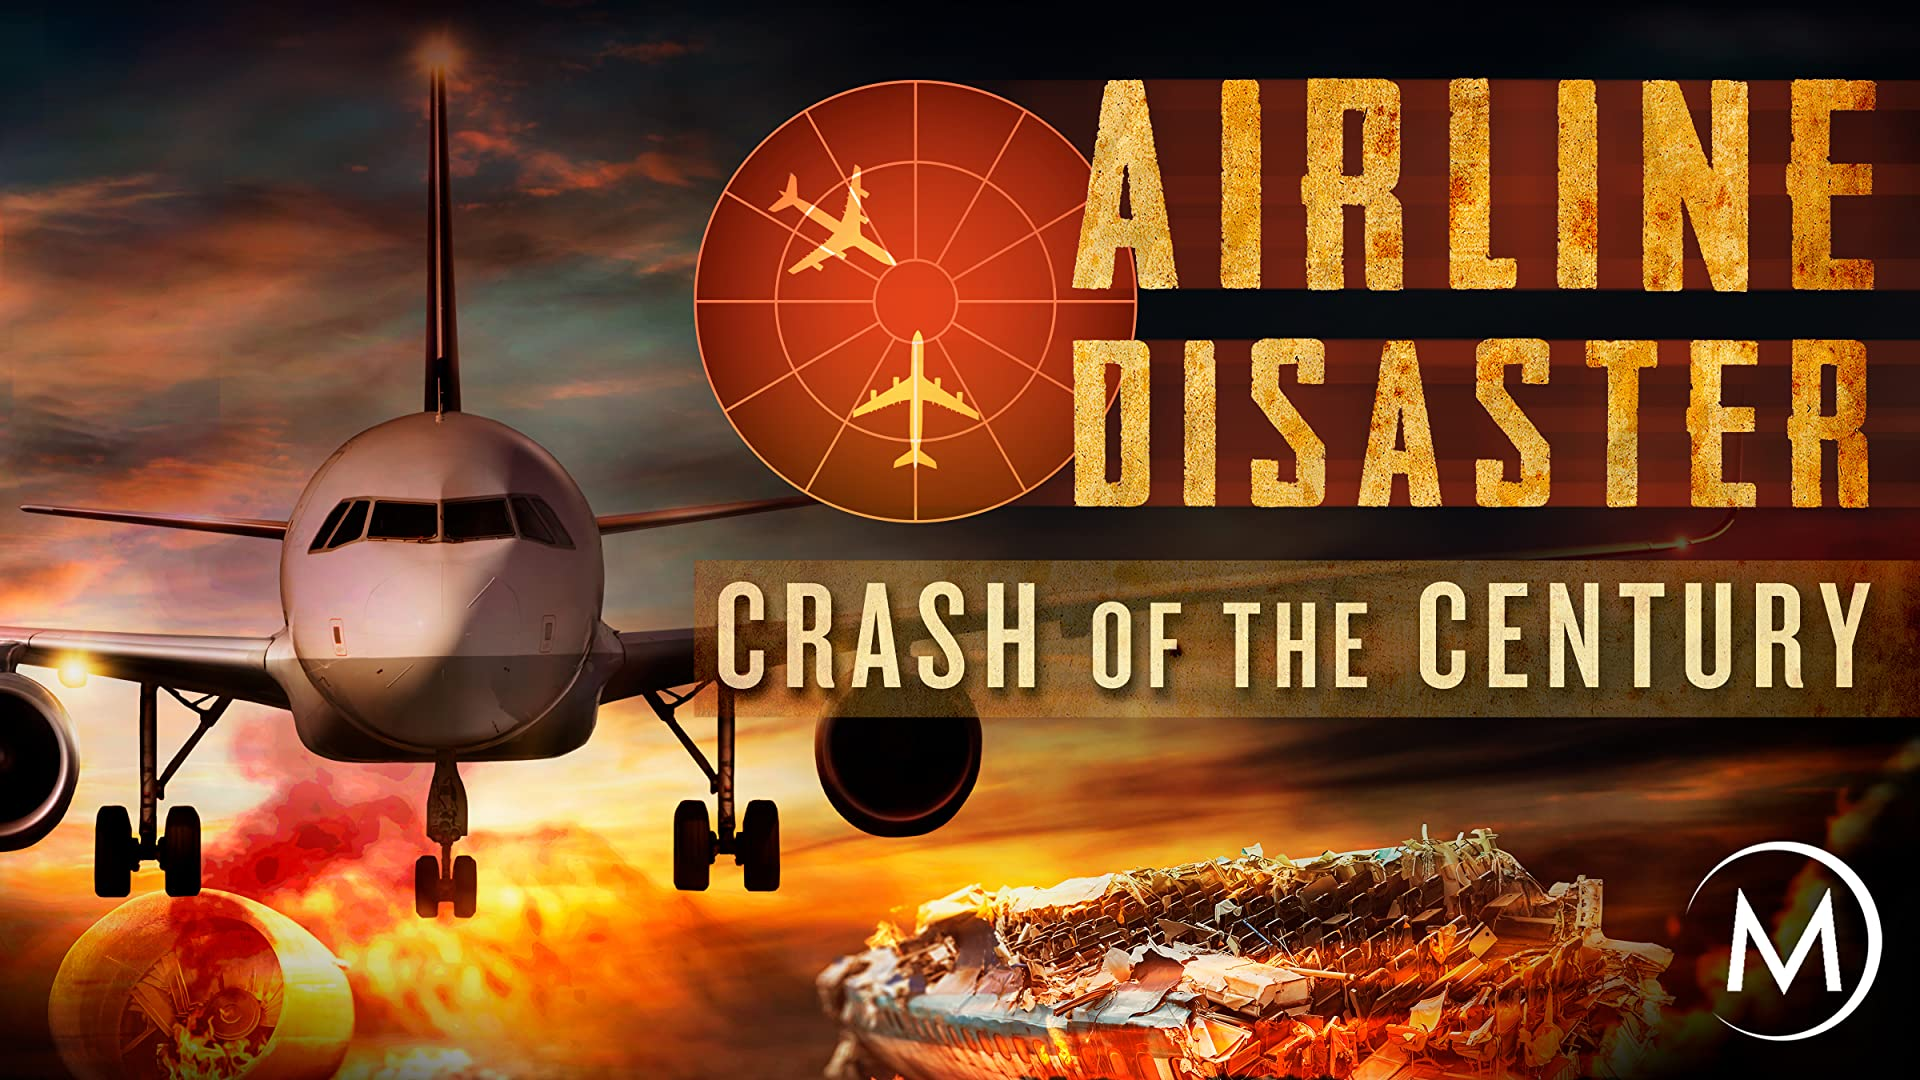 Airline Disaster: Crash of the Century